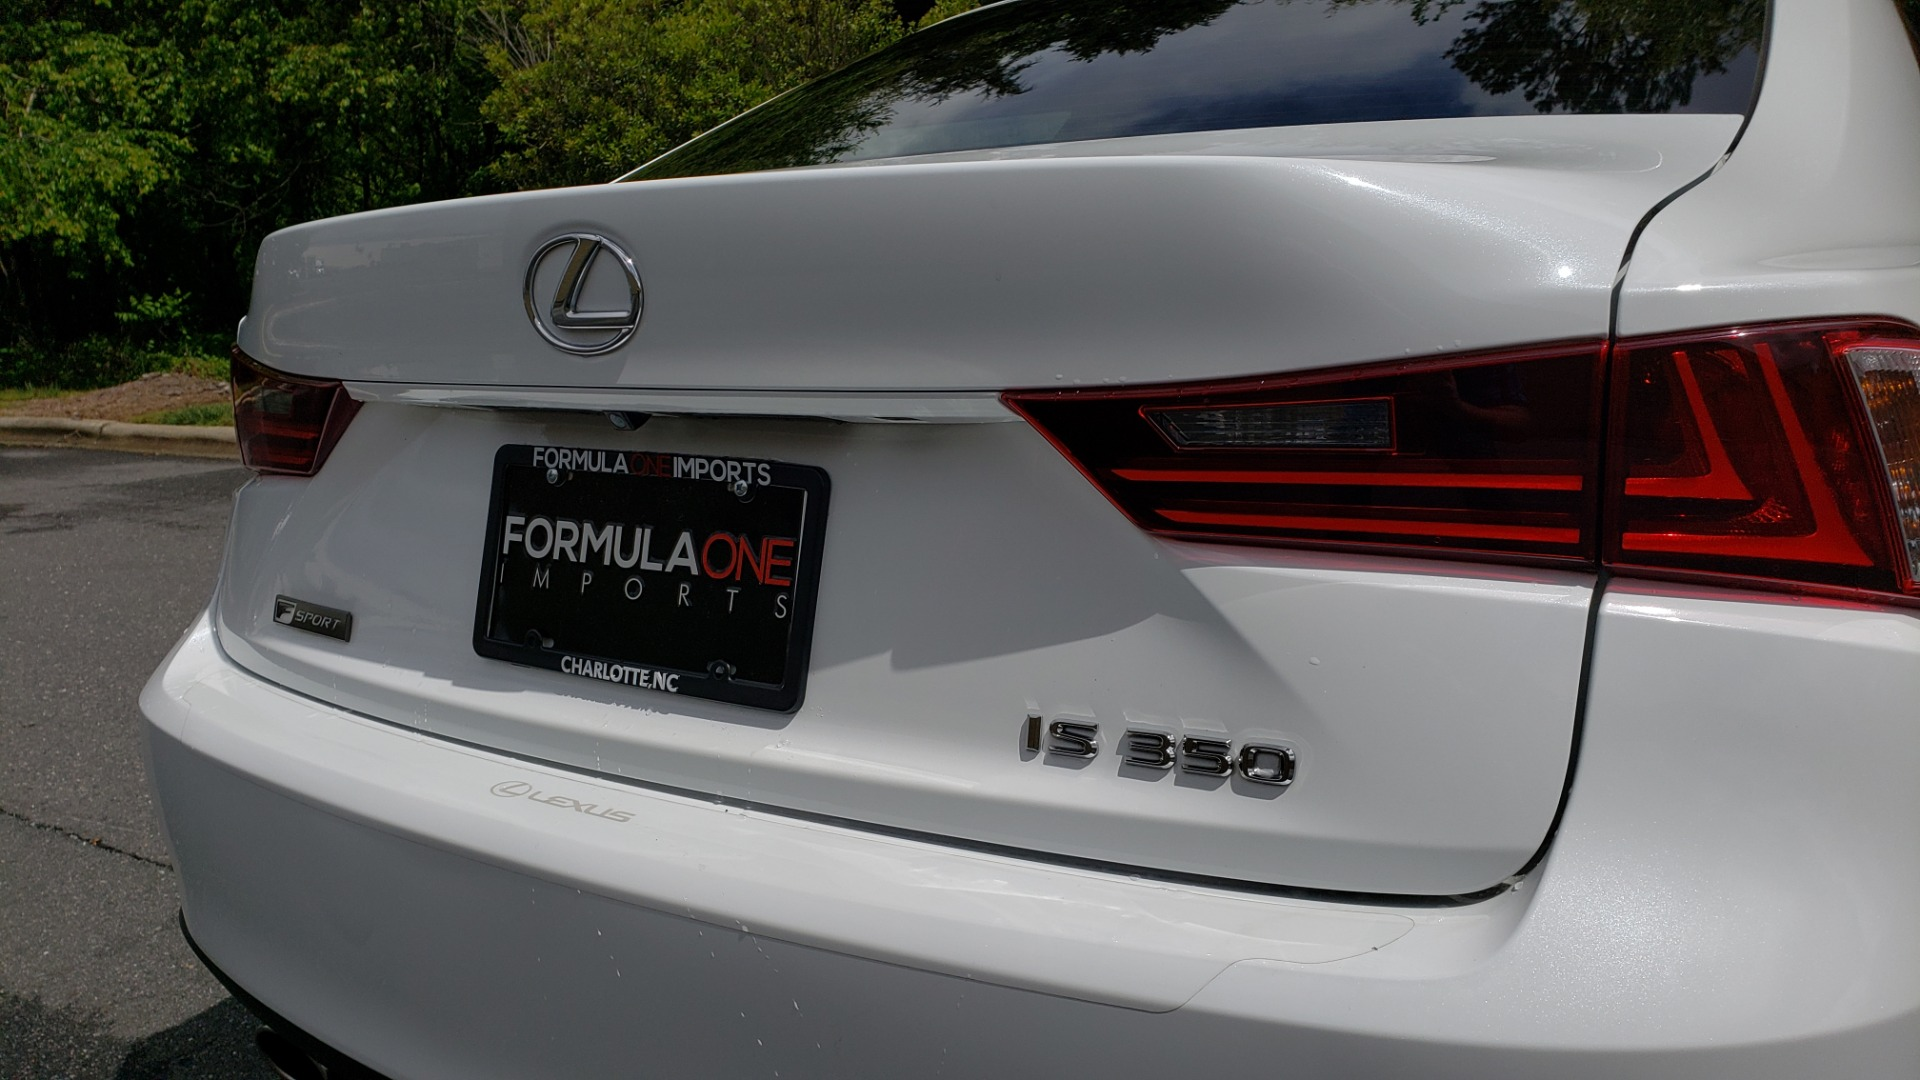 Used 2014 Lexus IS 350 F-SPORT / NAV / SUNROOF / REARVIEW / BSM / MARK LEV SND for sale Sold at Formula Imports in Charlotte NC 28227 28